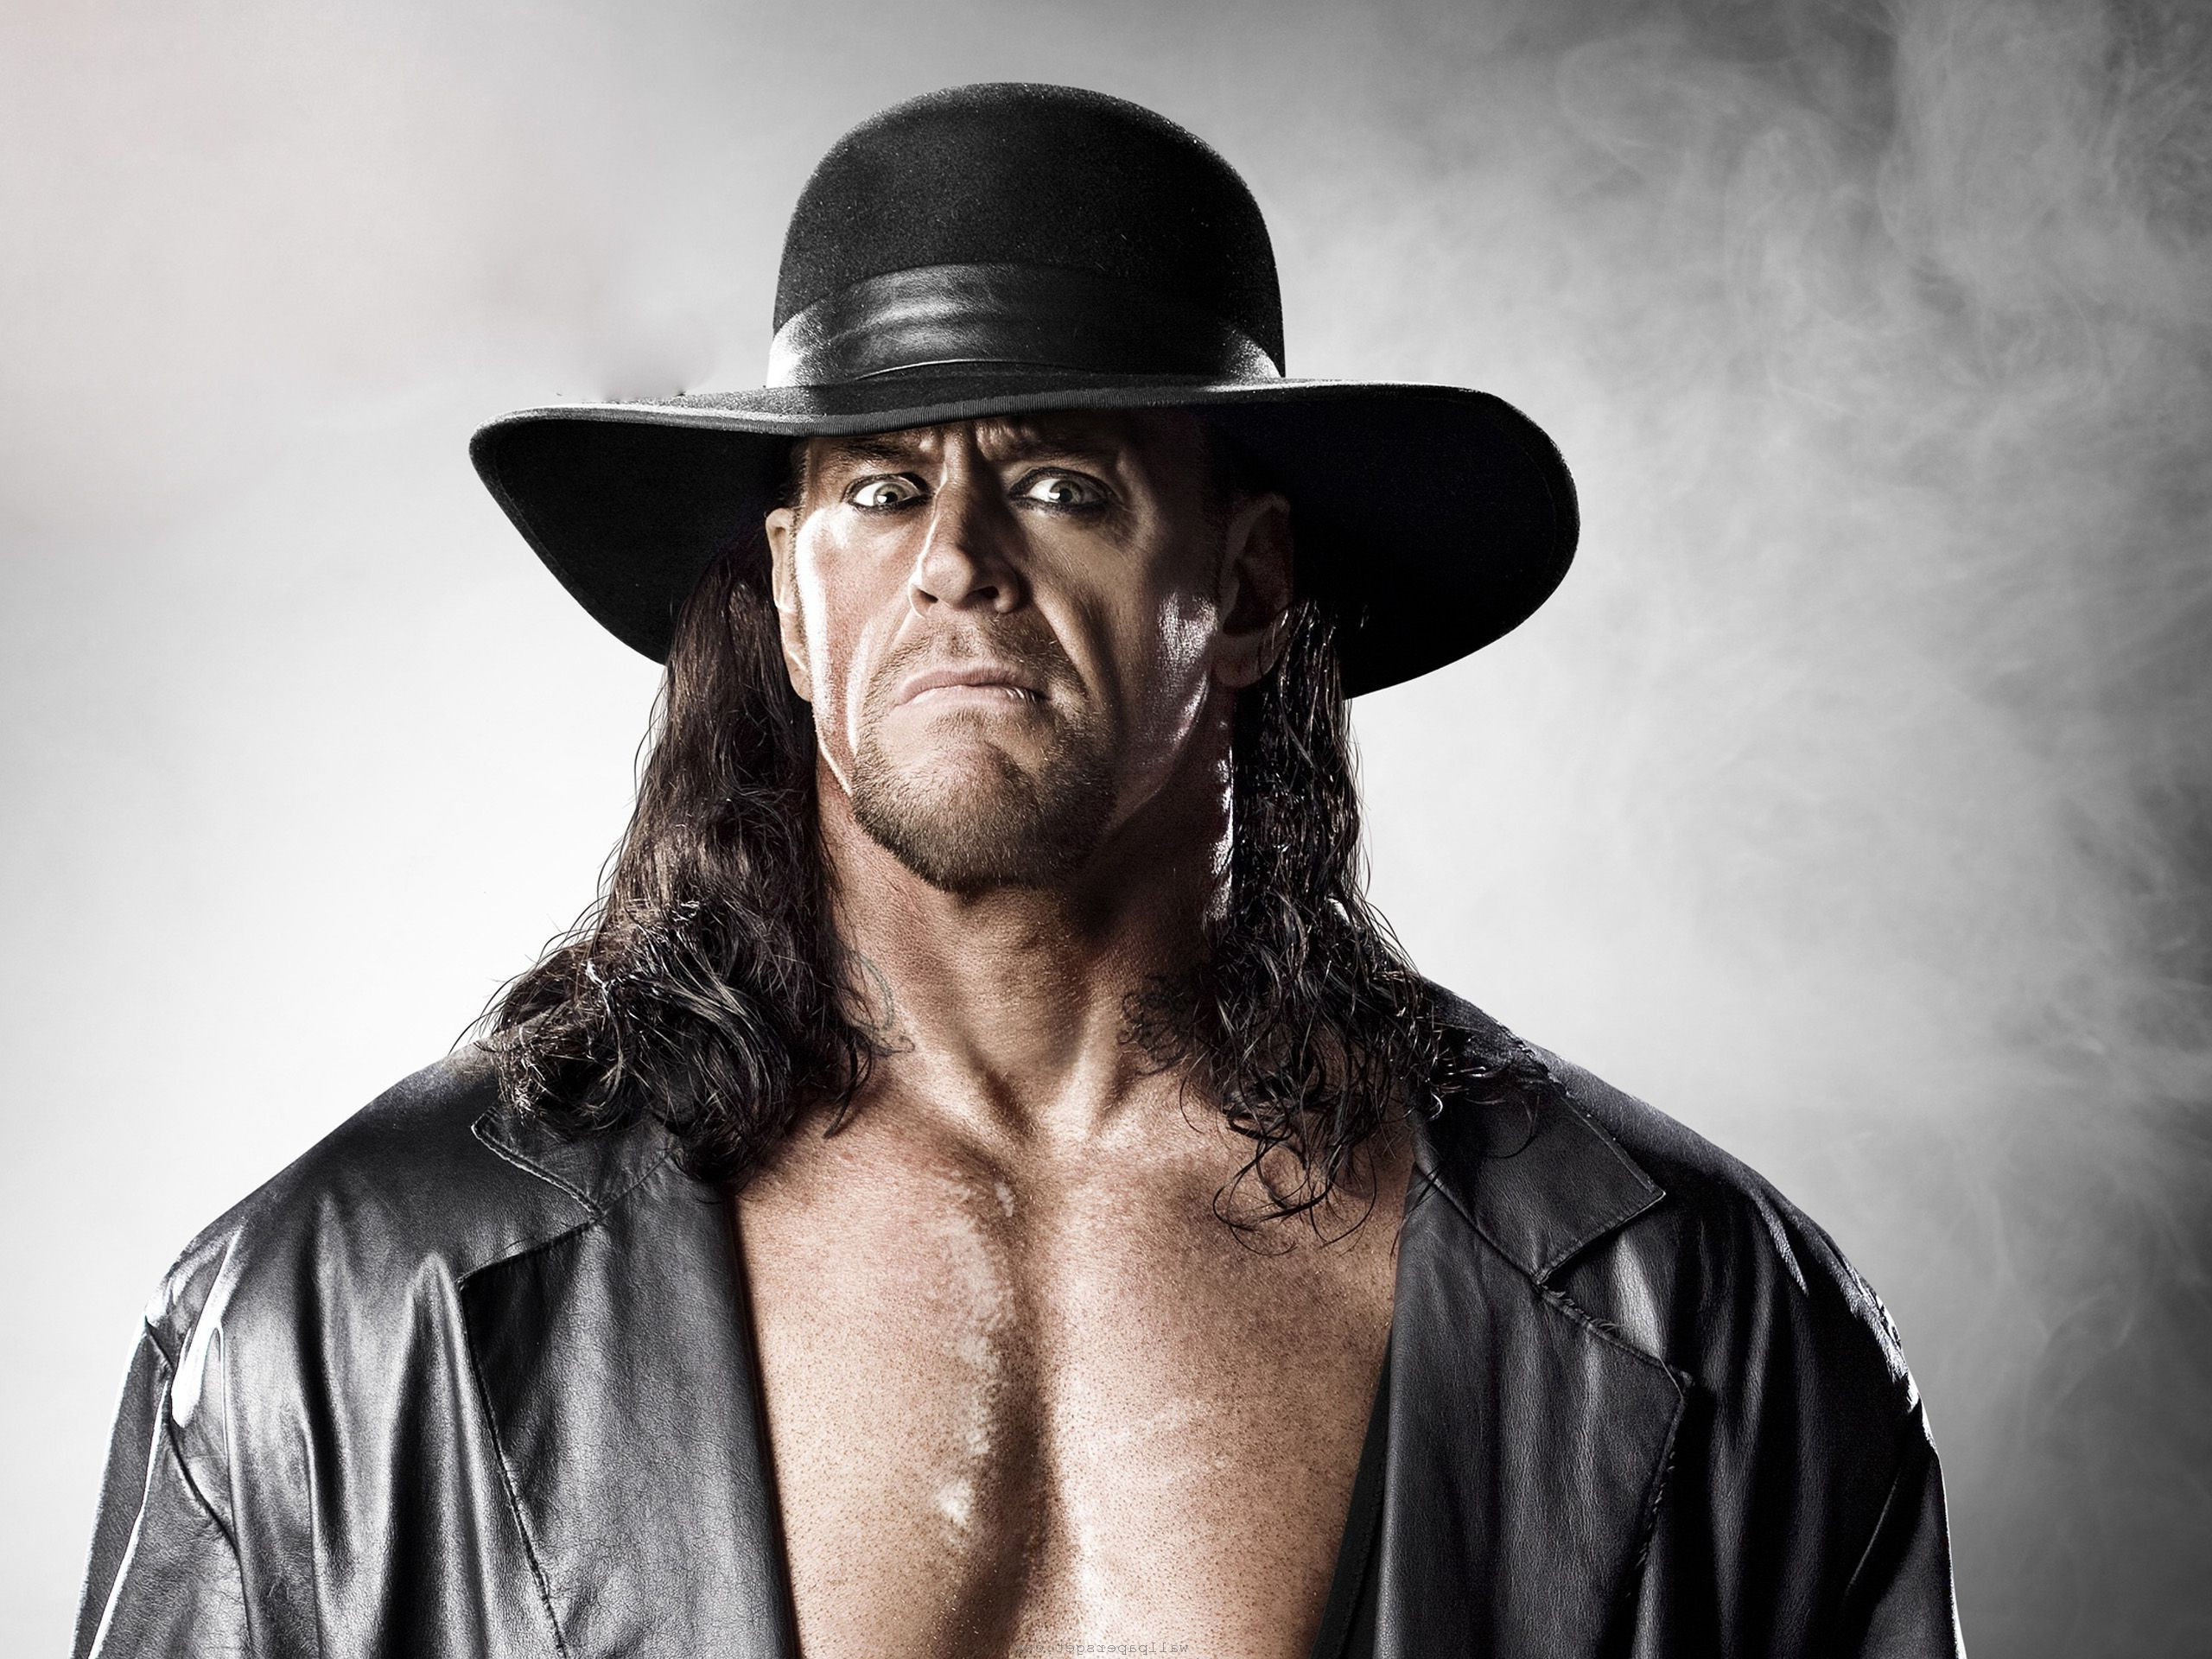 wwe images the undertaker hd fond d écran and background photos